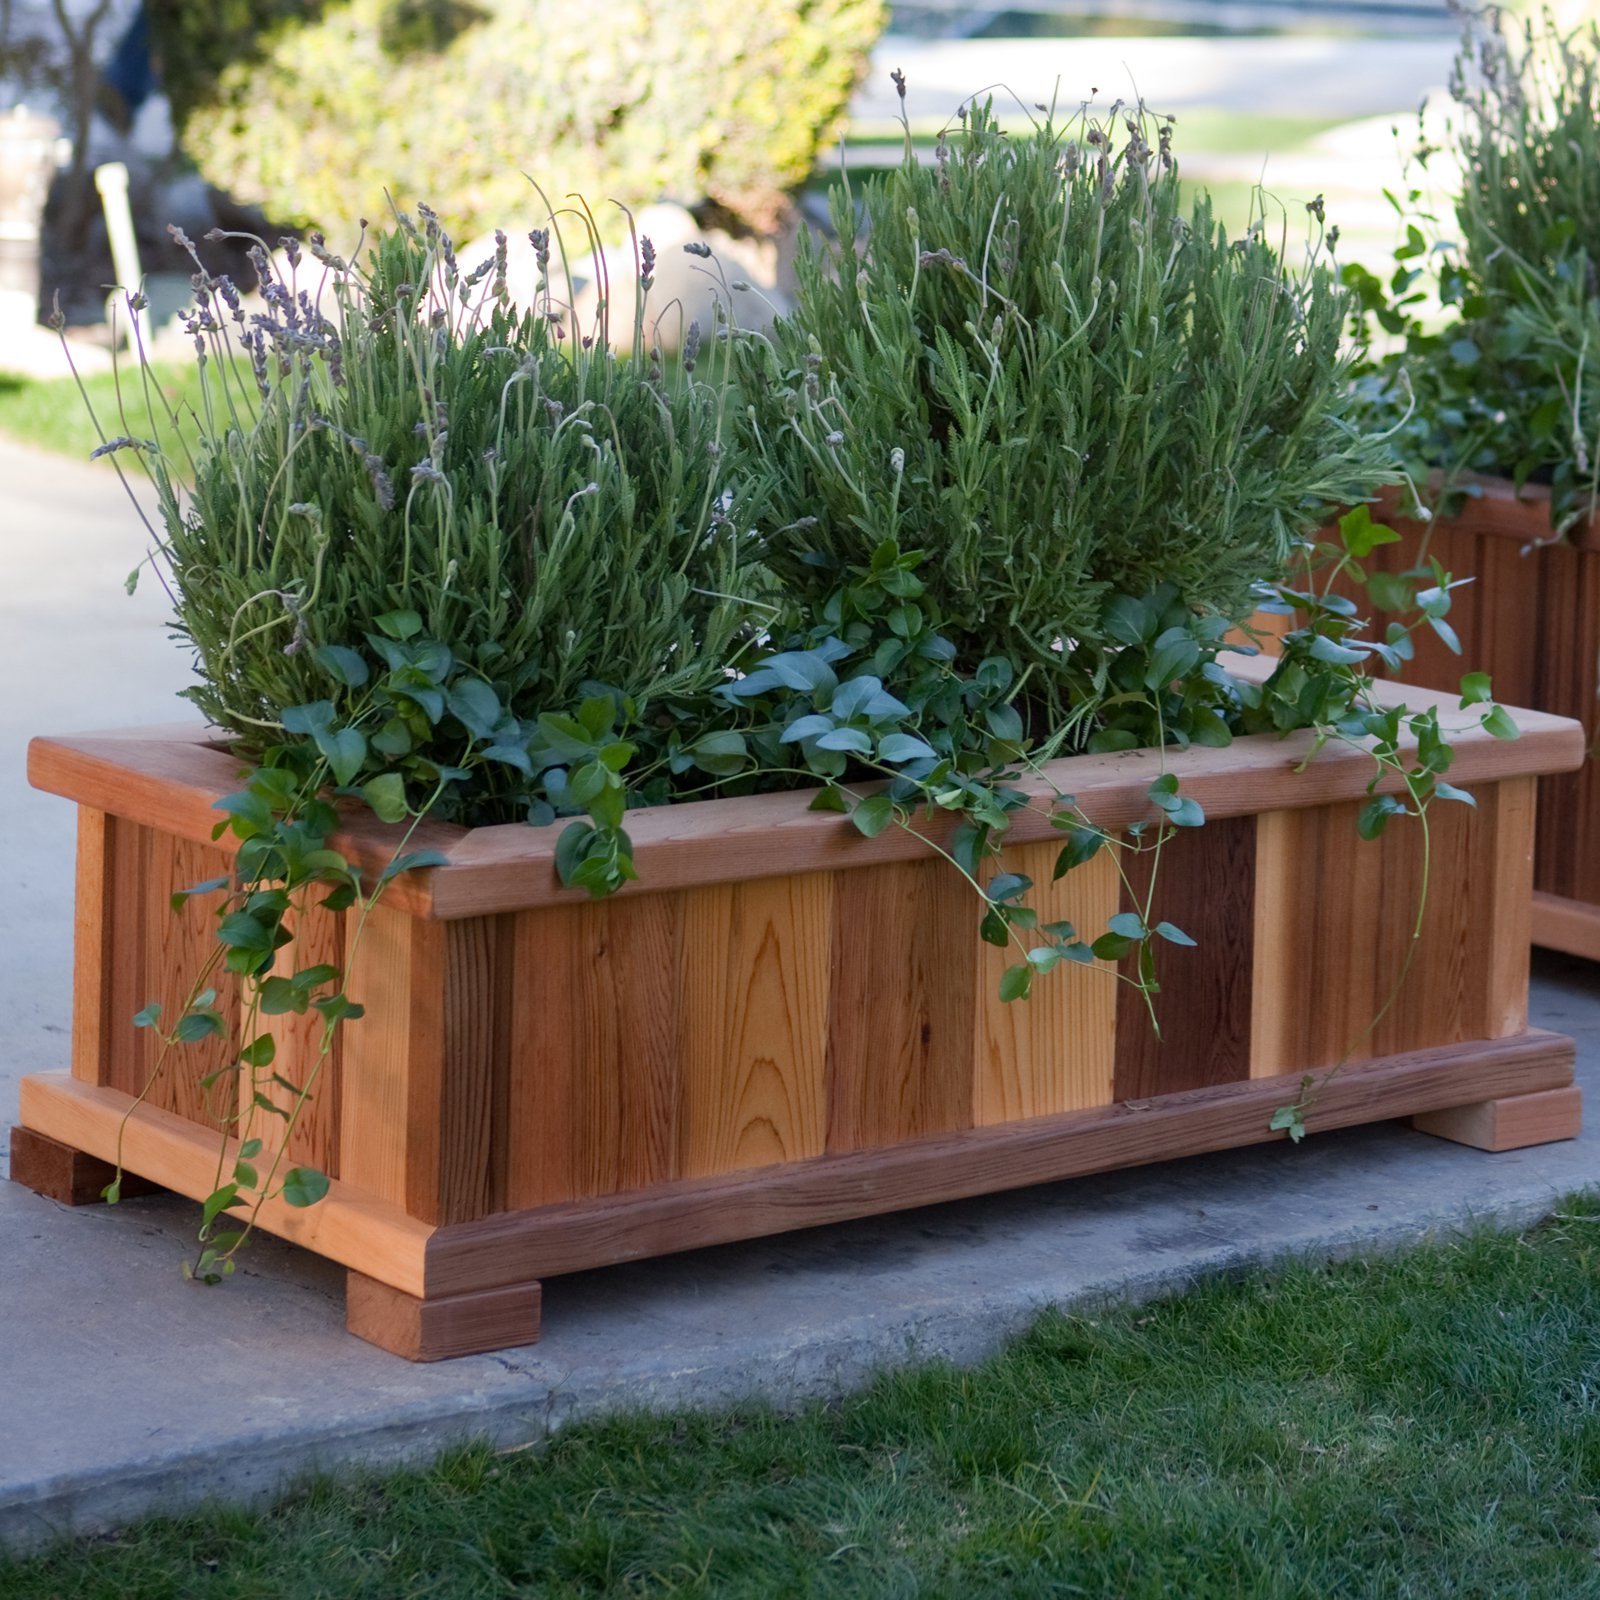 Wood Country Rectangle Cedar Wood Boise Patio Planter Box   Walmart.com